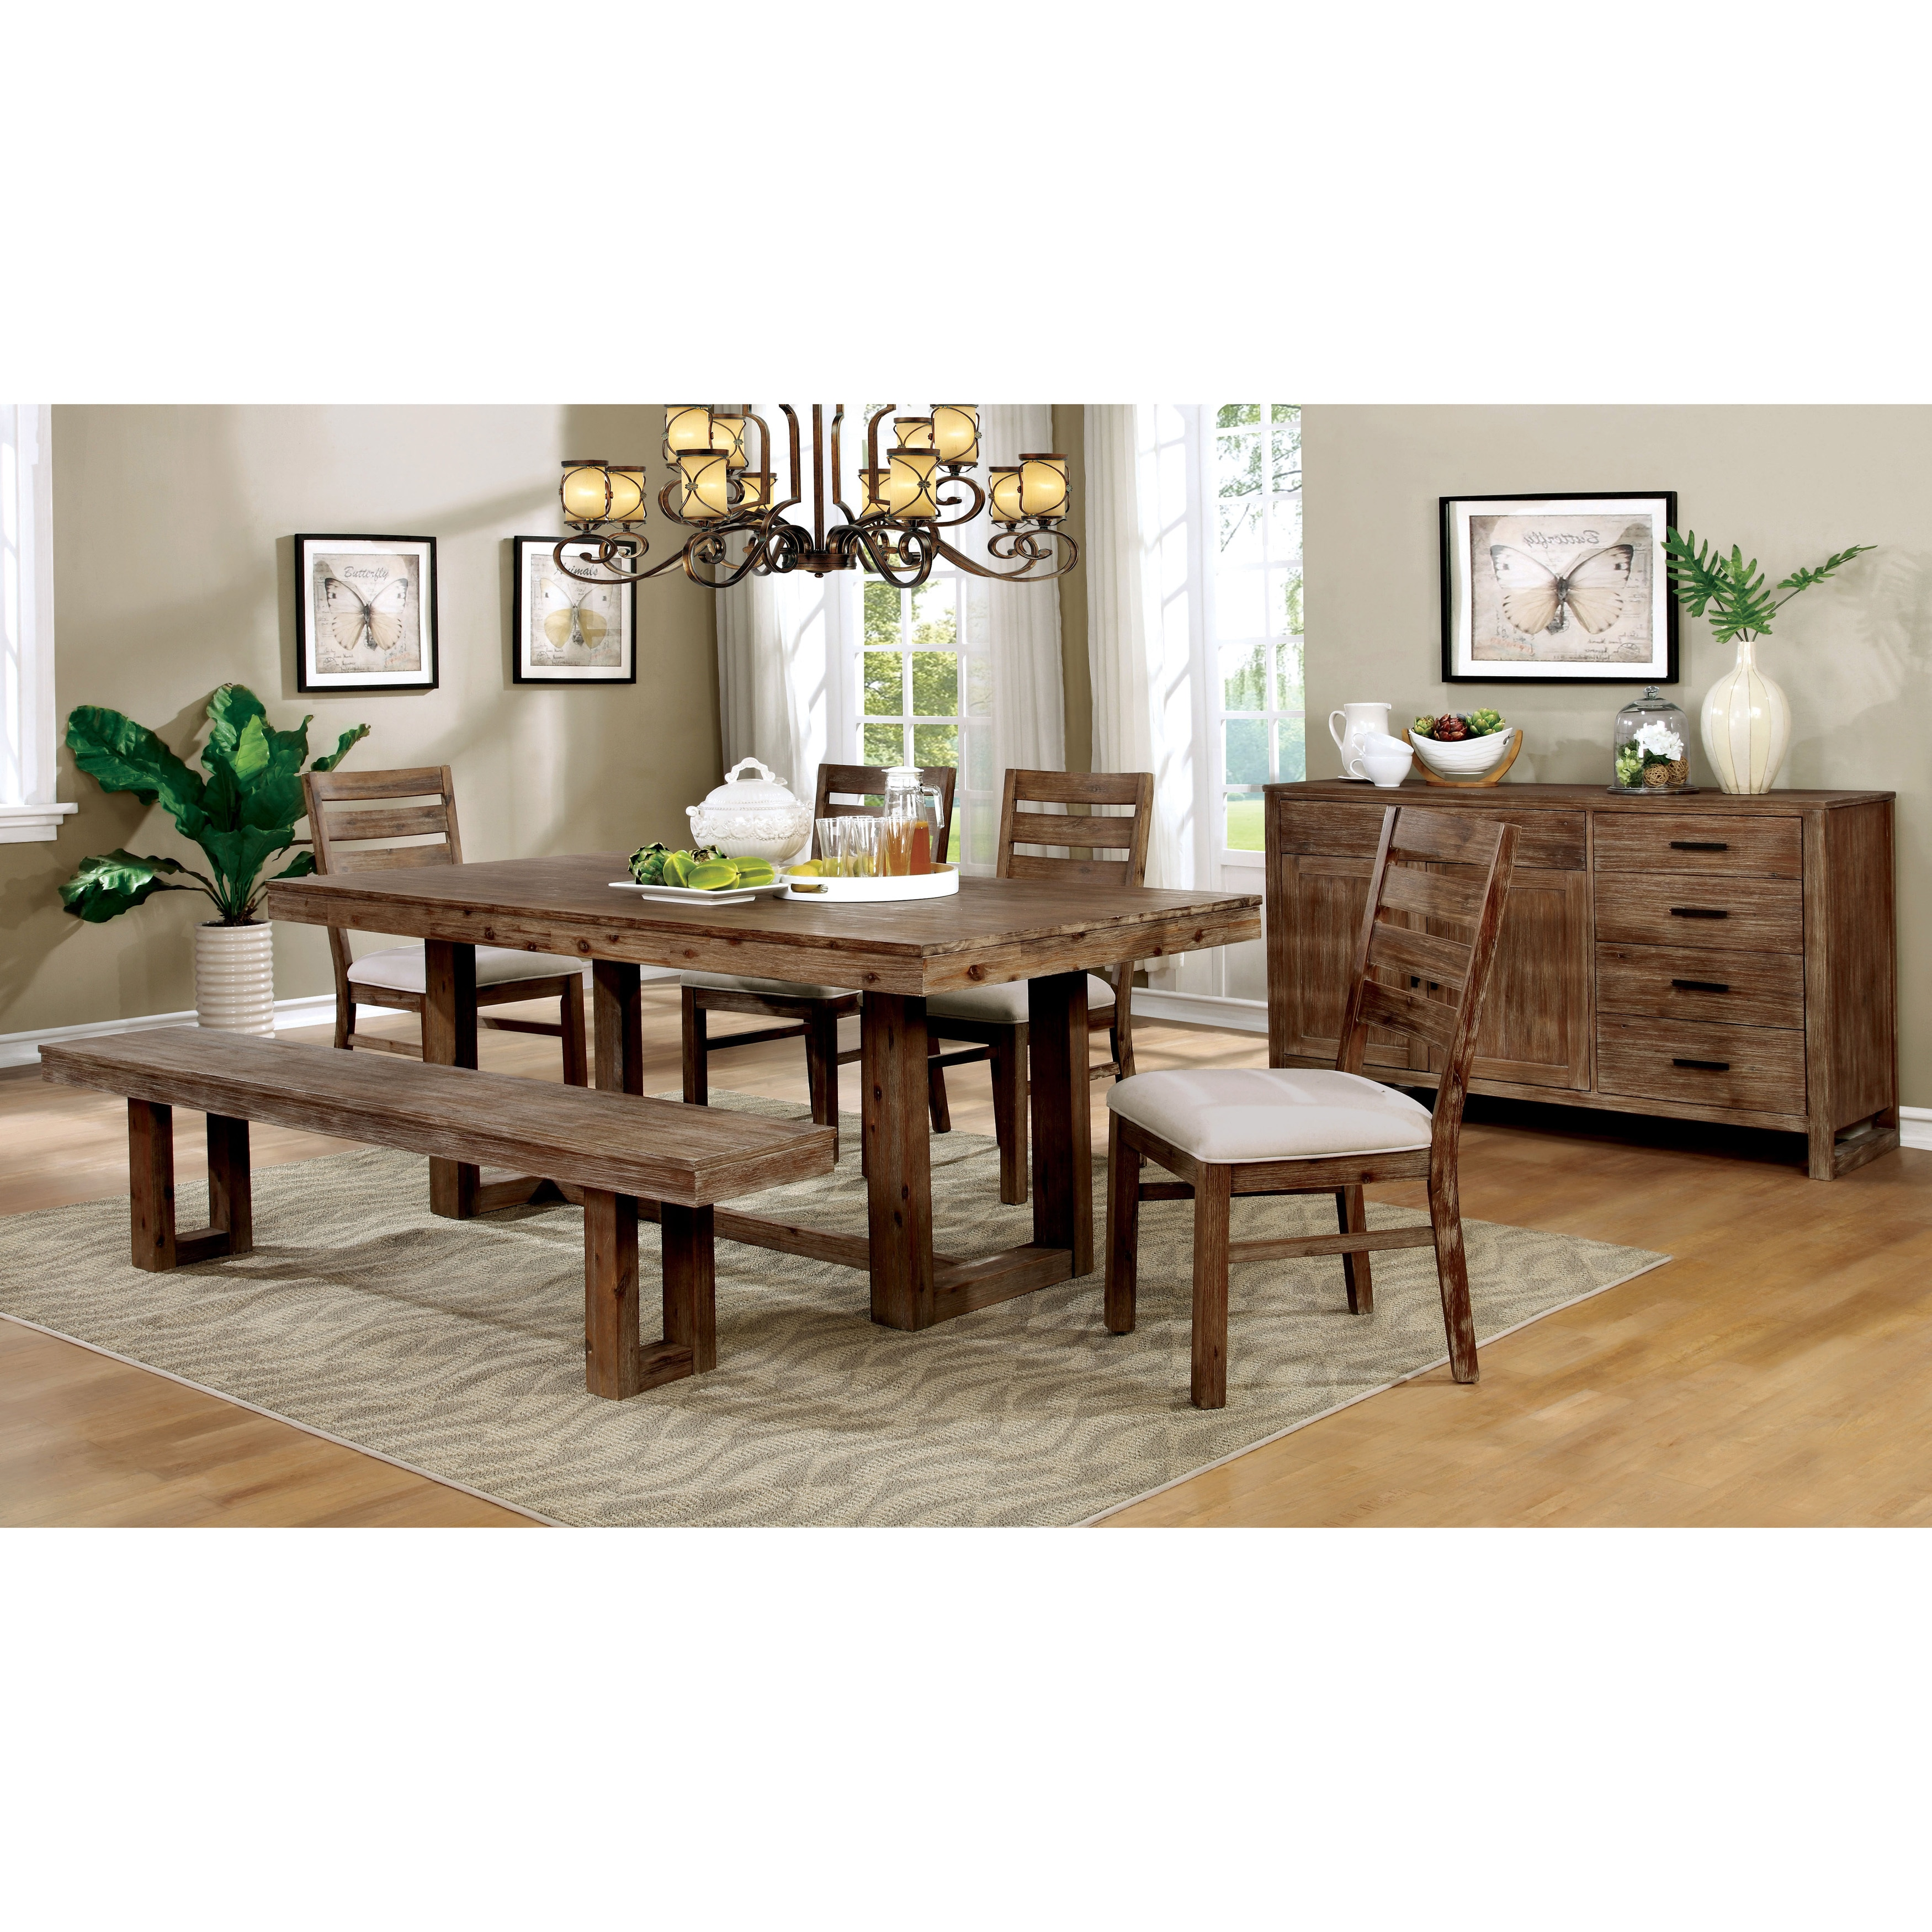 homesfeed dinette sets ideas set style with dining kitchen front wood bench modern piece entity table chairs